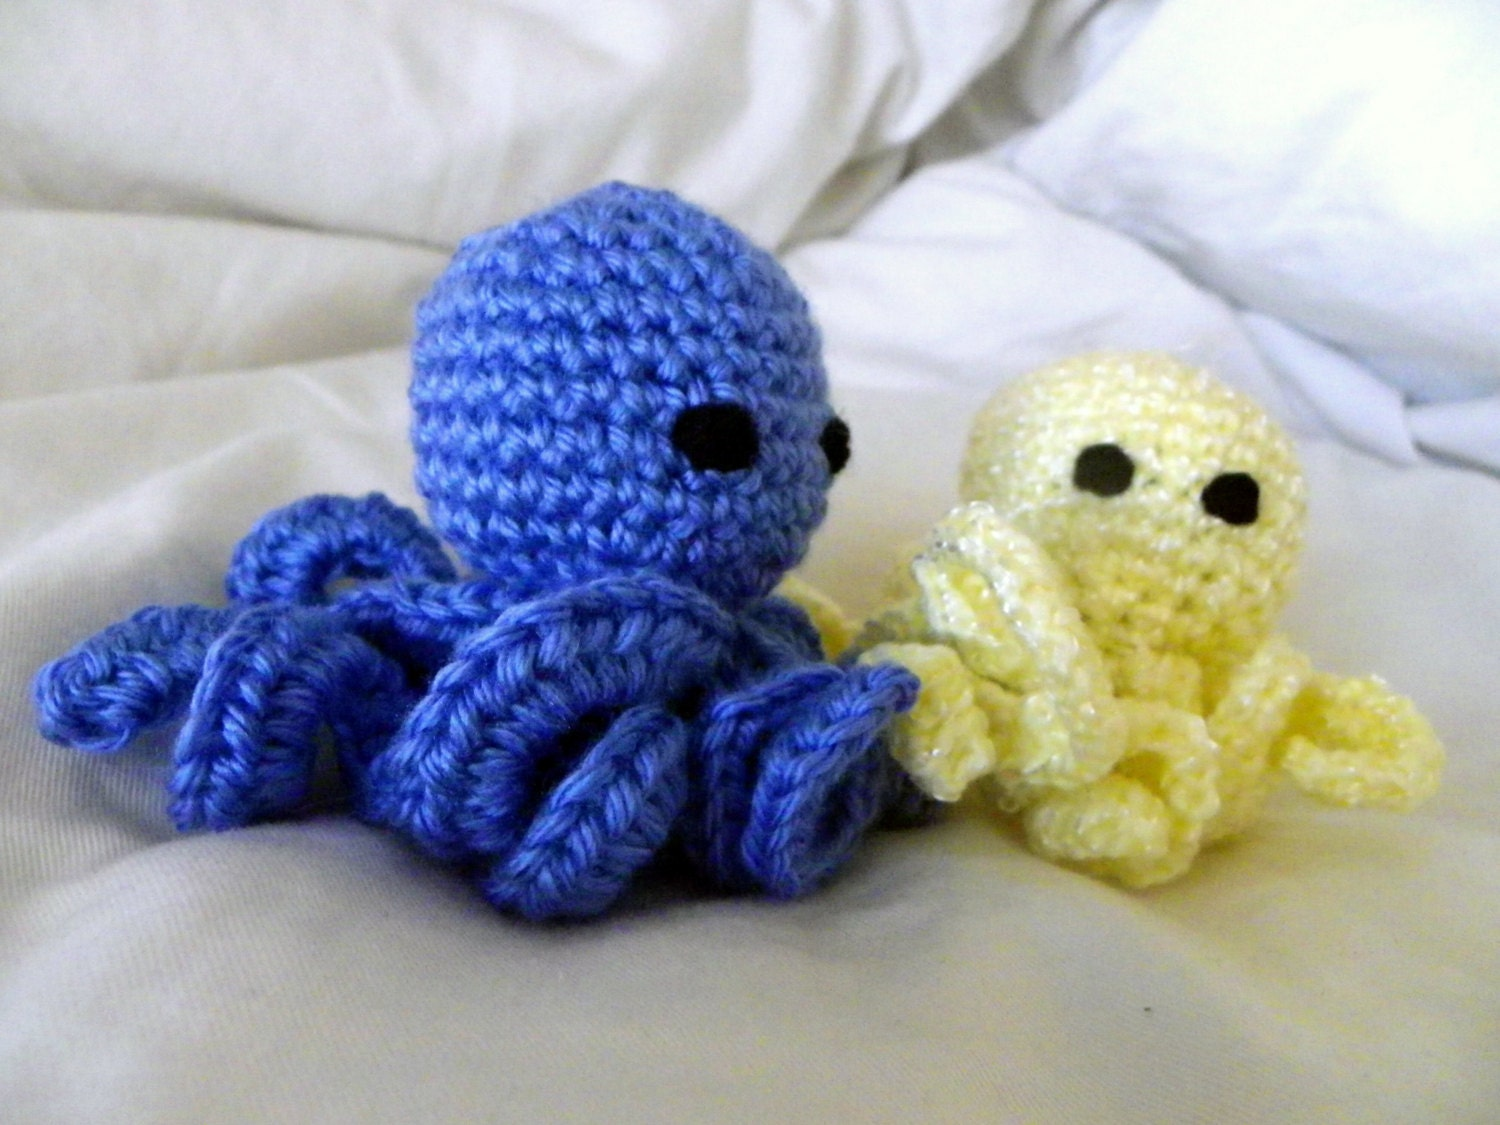 Crochet Patterns Octopus : Life of a College Blogger: Free Crochet Pattern- Amigurumi Octopus